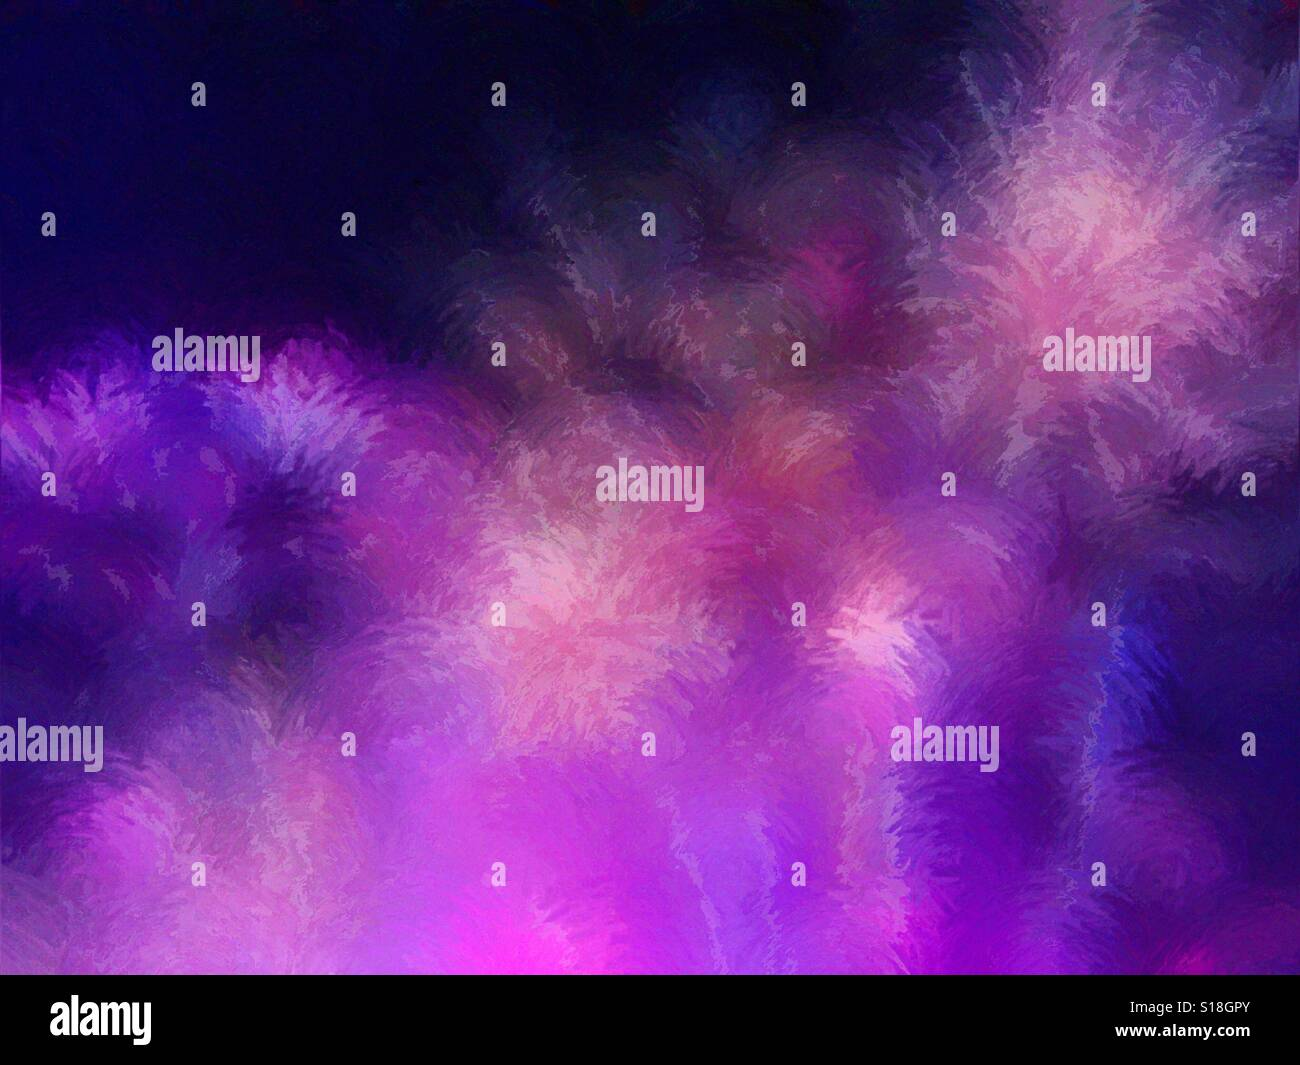 An abstract digital painting from a photograph of fireworks. - Stock Image